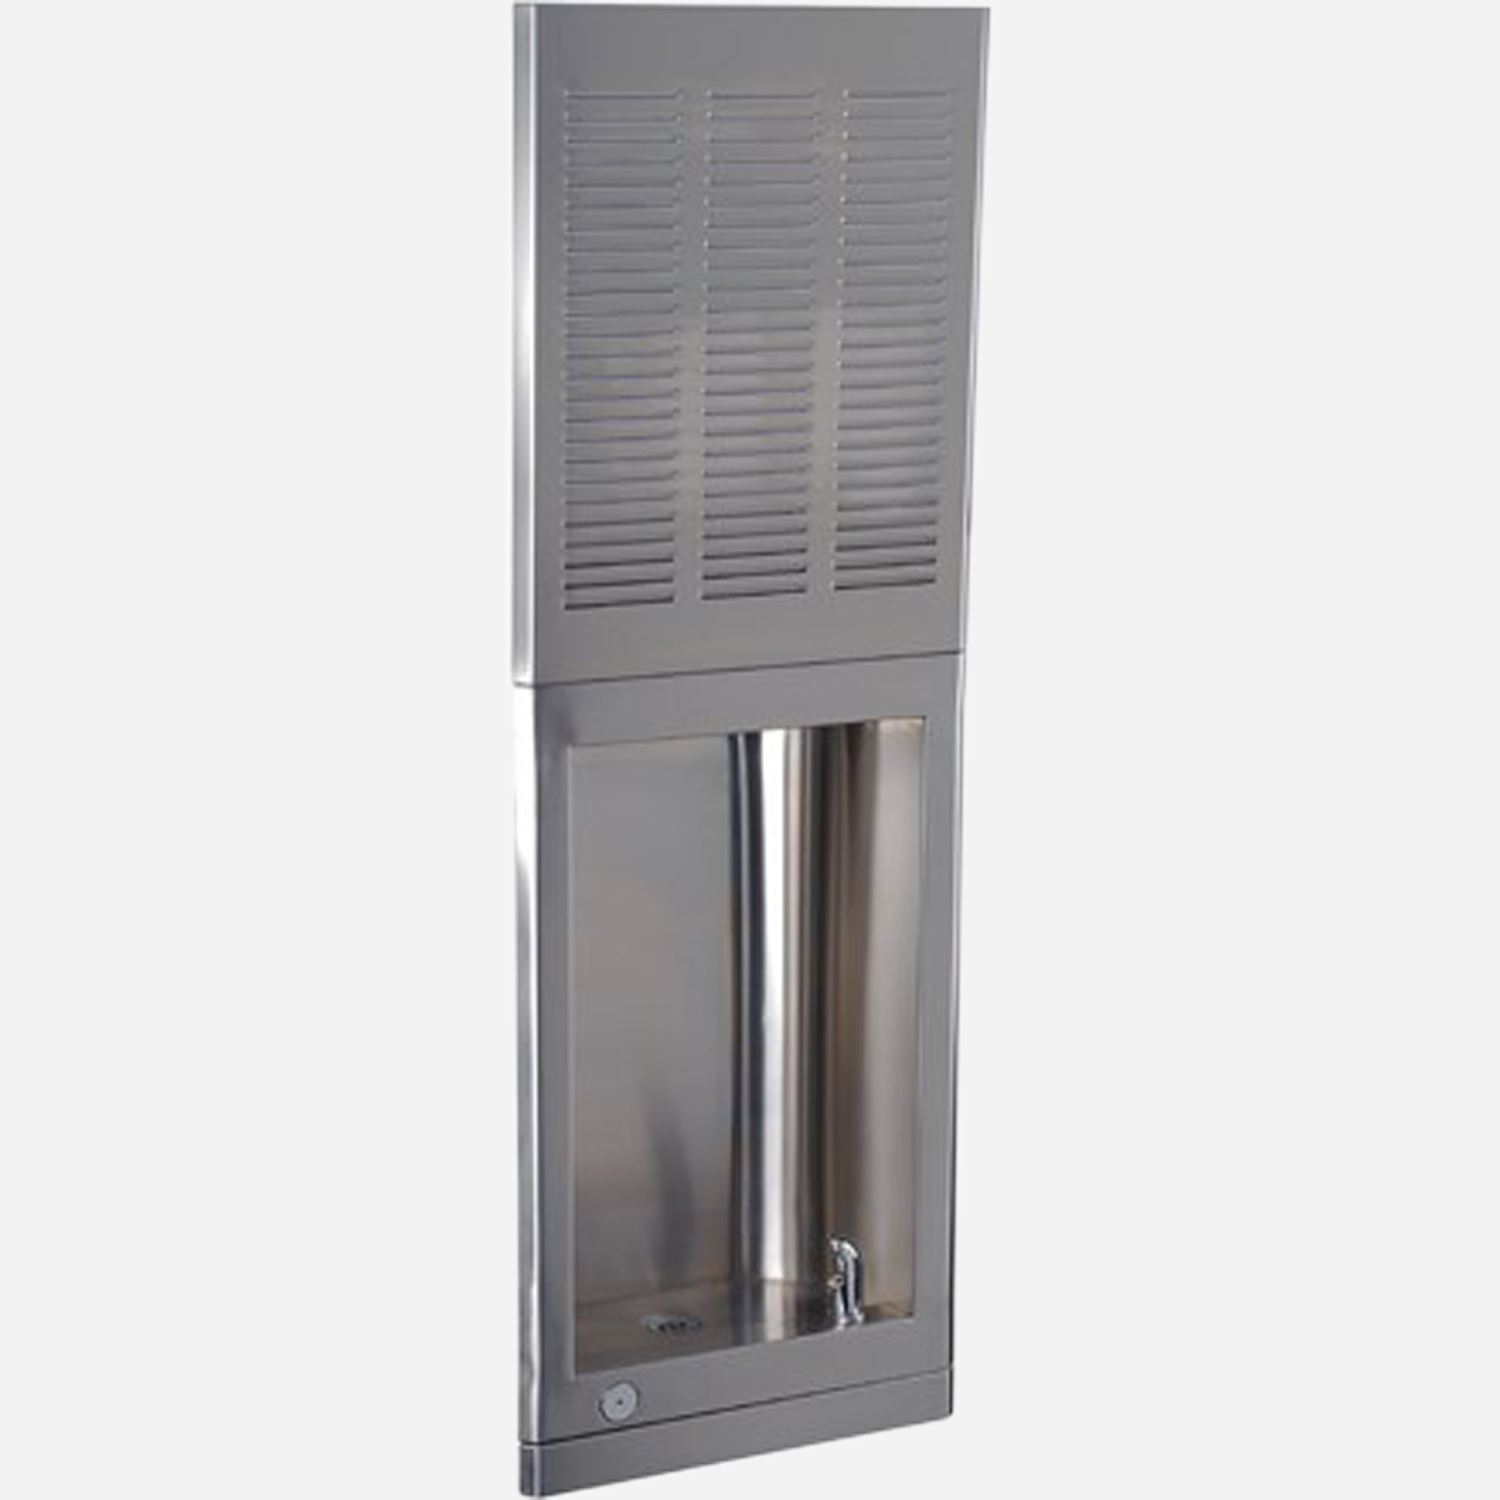 Recessed Electric Water Cooler